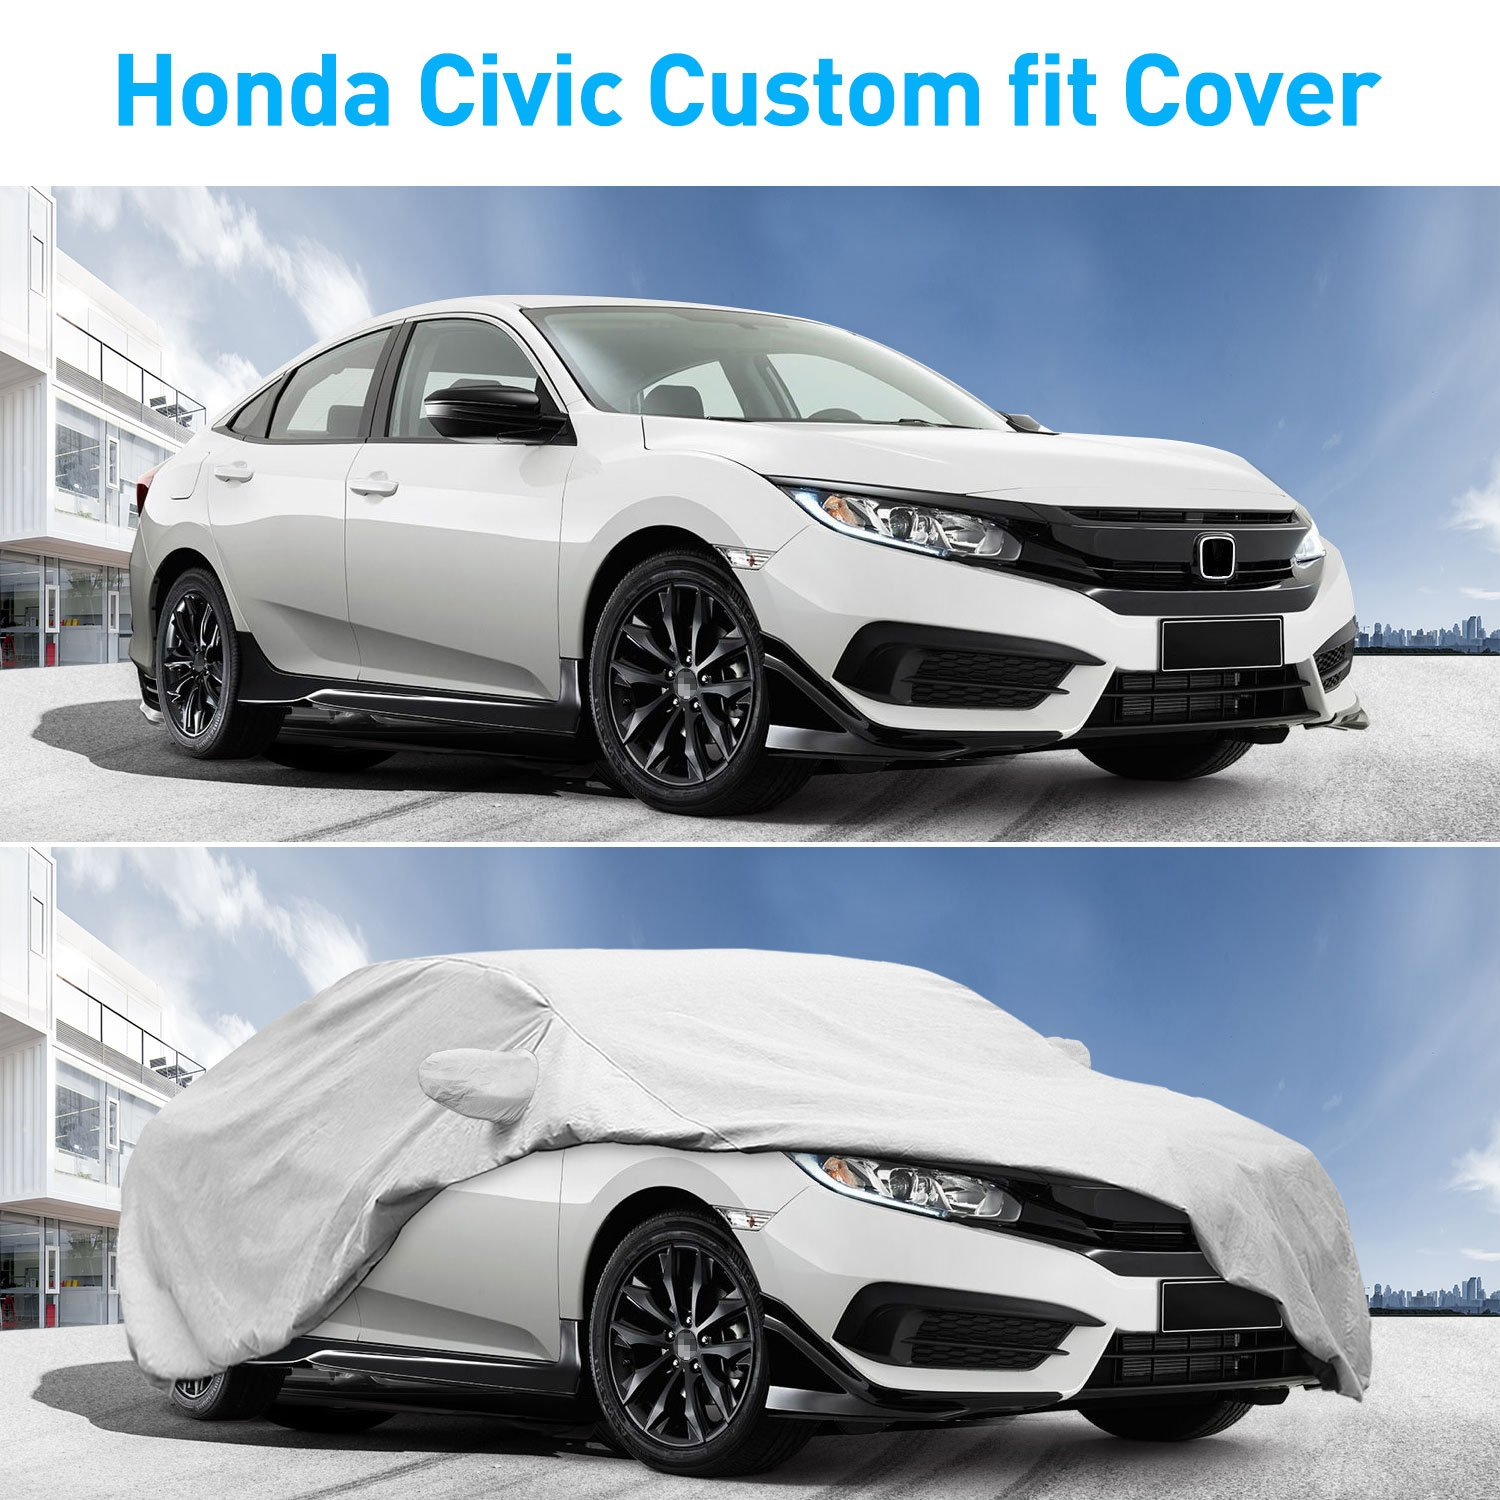 Dustproof All Weather Waterproof Scratch Proof Civic Car Cover Free Windproof Ribbon /& Anti-Theft Lock KAKIT 6 Layers Civic Car Cover for Honda Civic 2010-2017